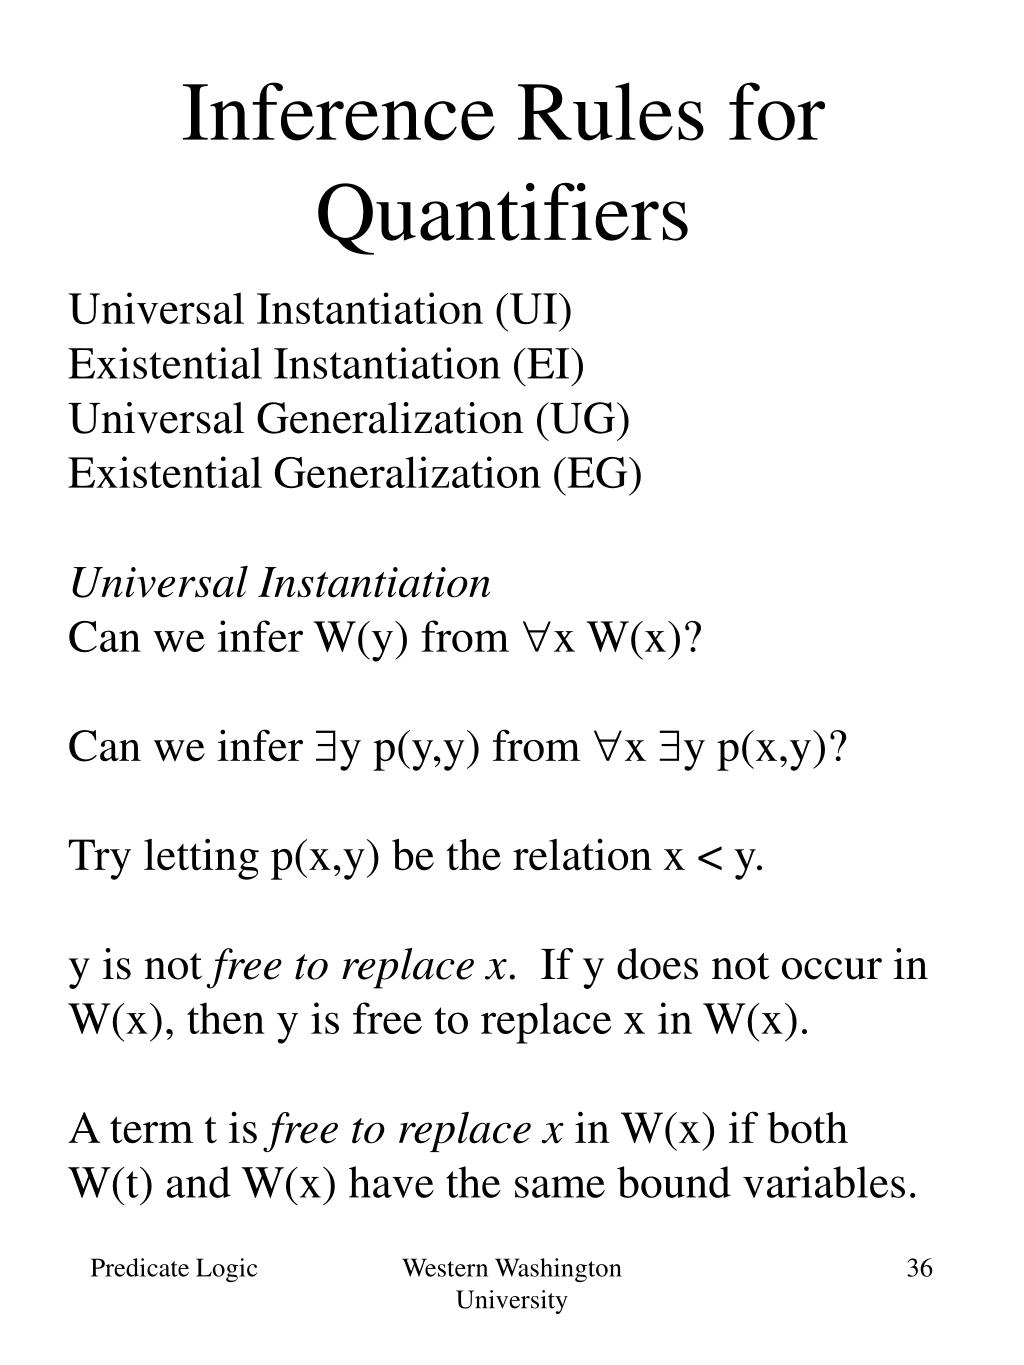 Inference Rules for Quantifiers